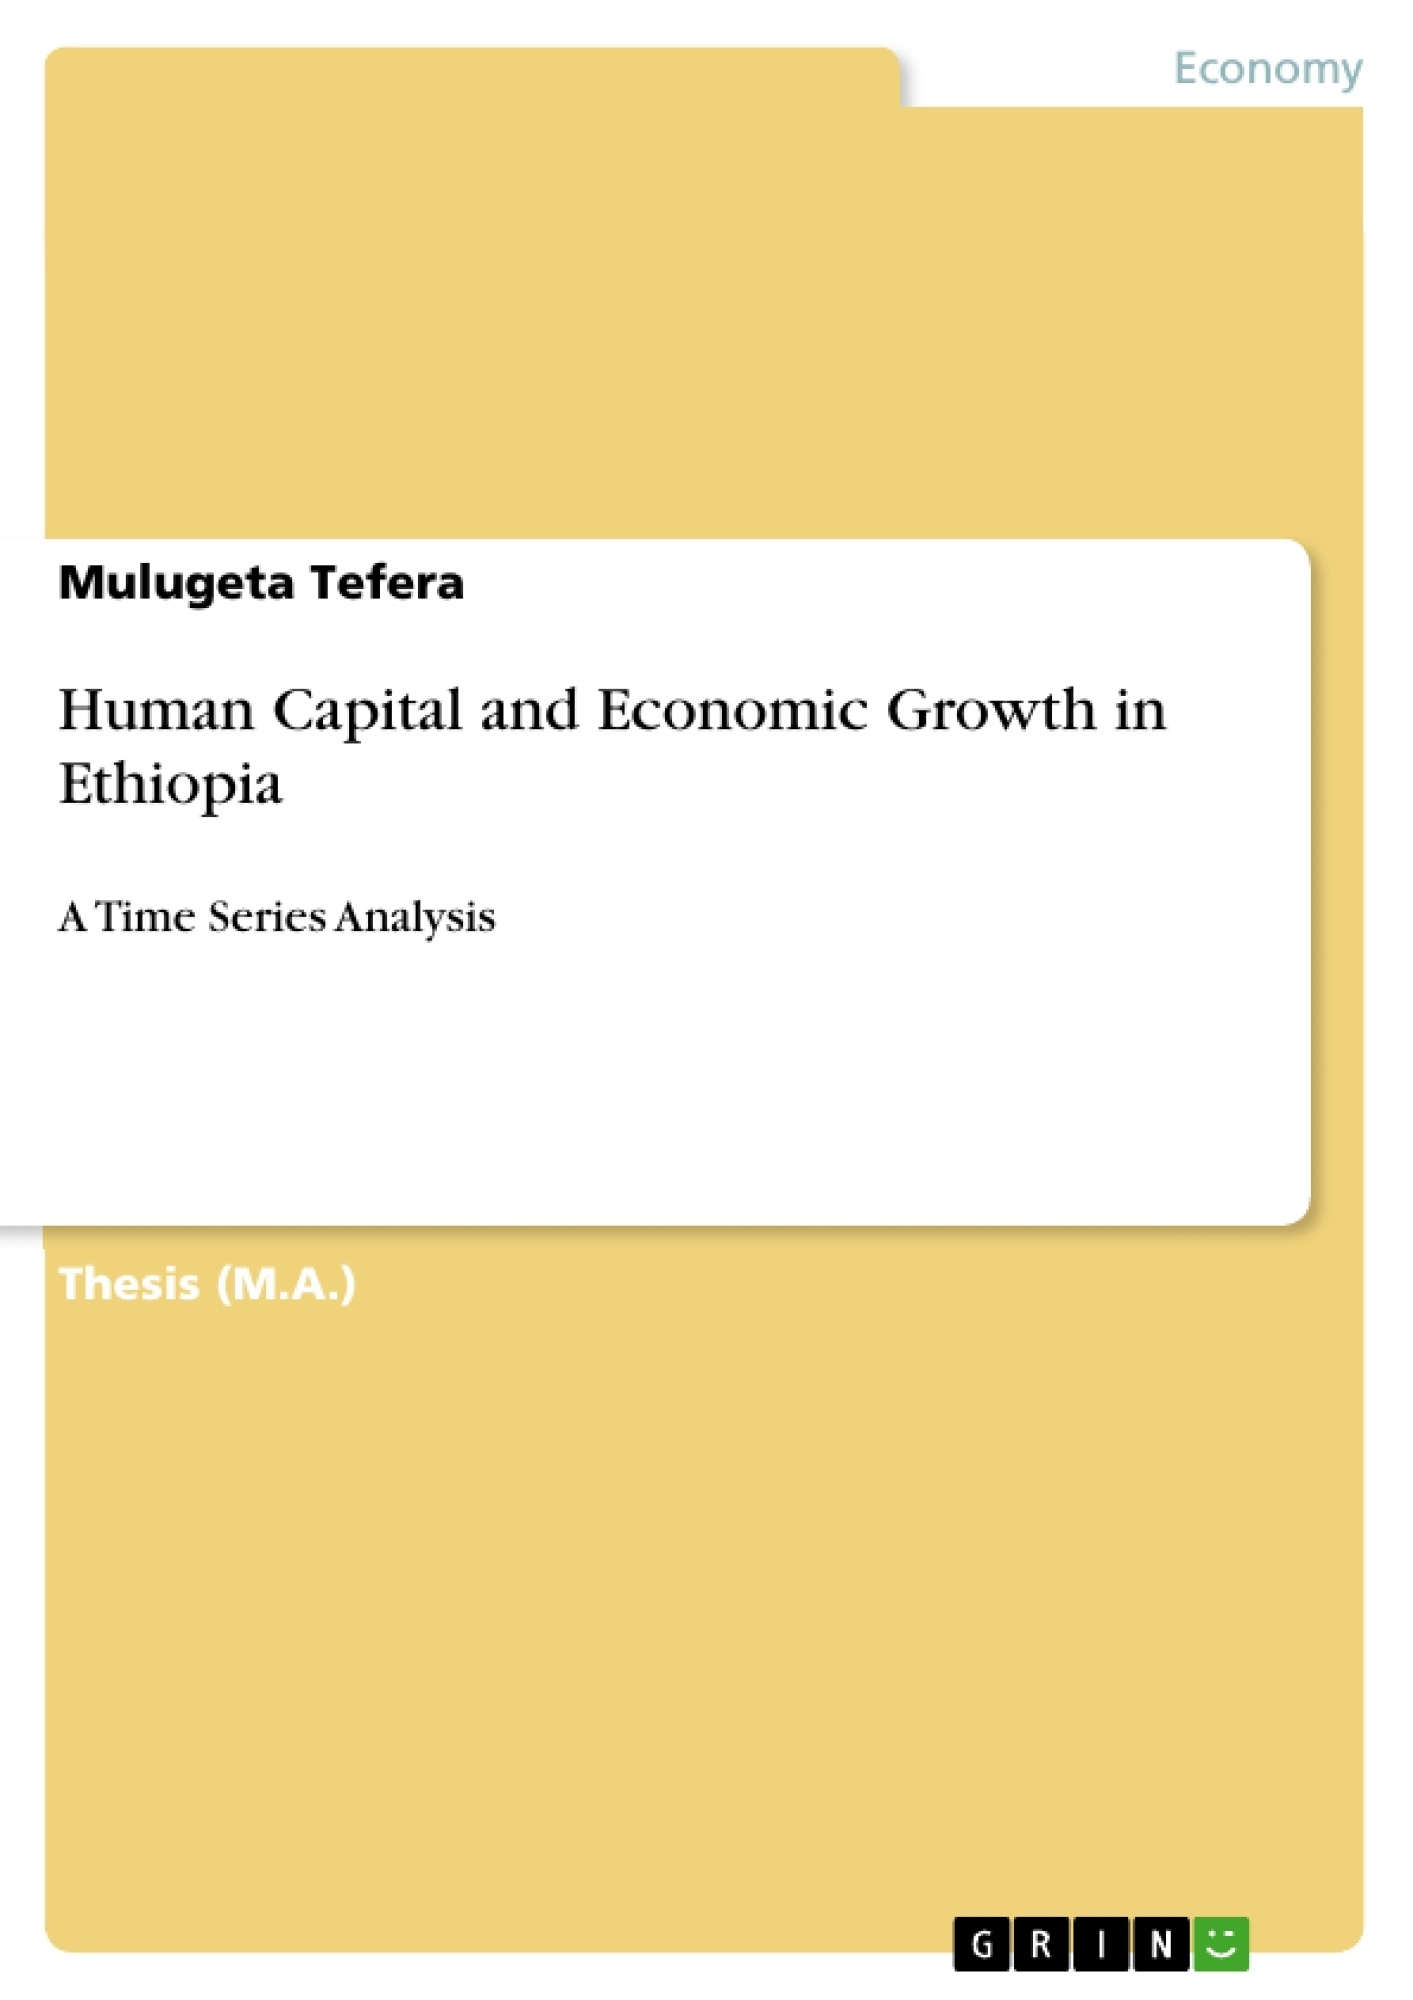 GRIN - Human Capital and Economic Growth in Ethiopia